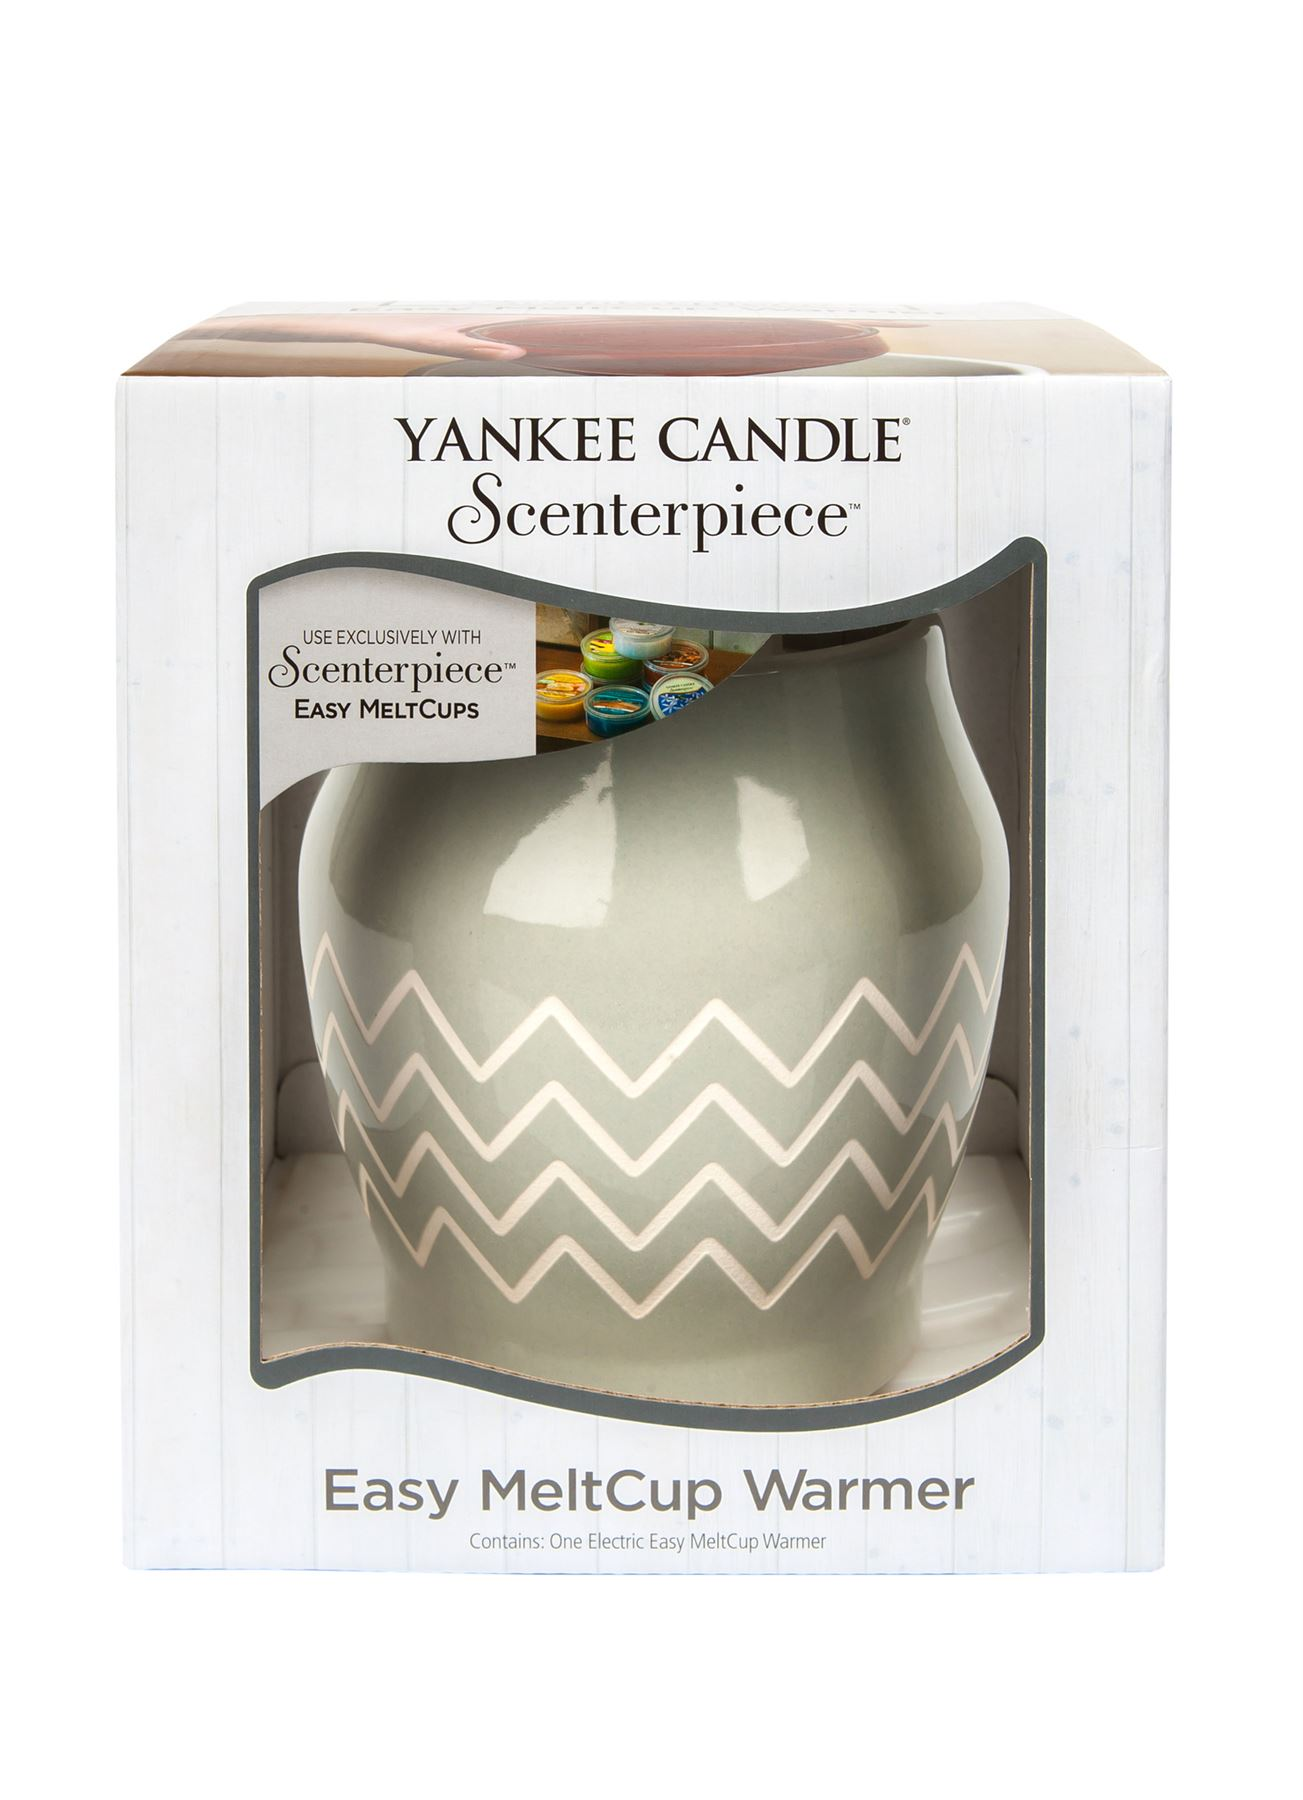 Yankee candle scenterpiece easy meltcup system choose